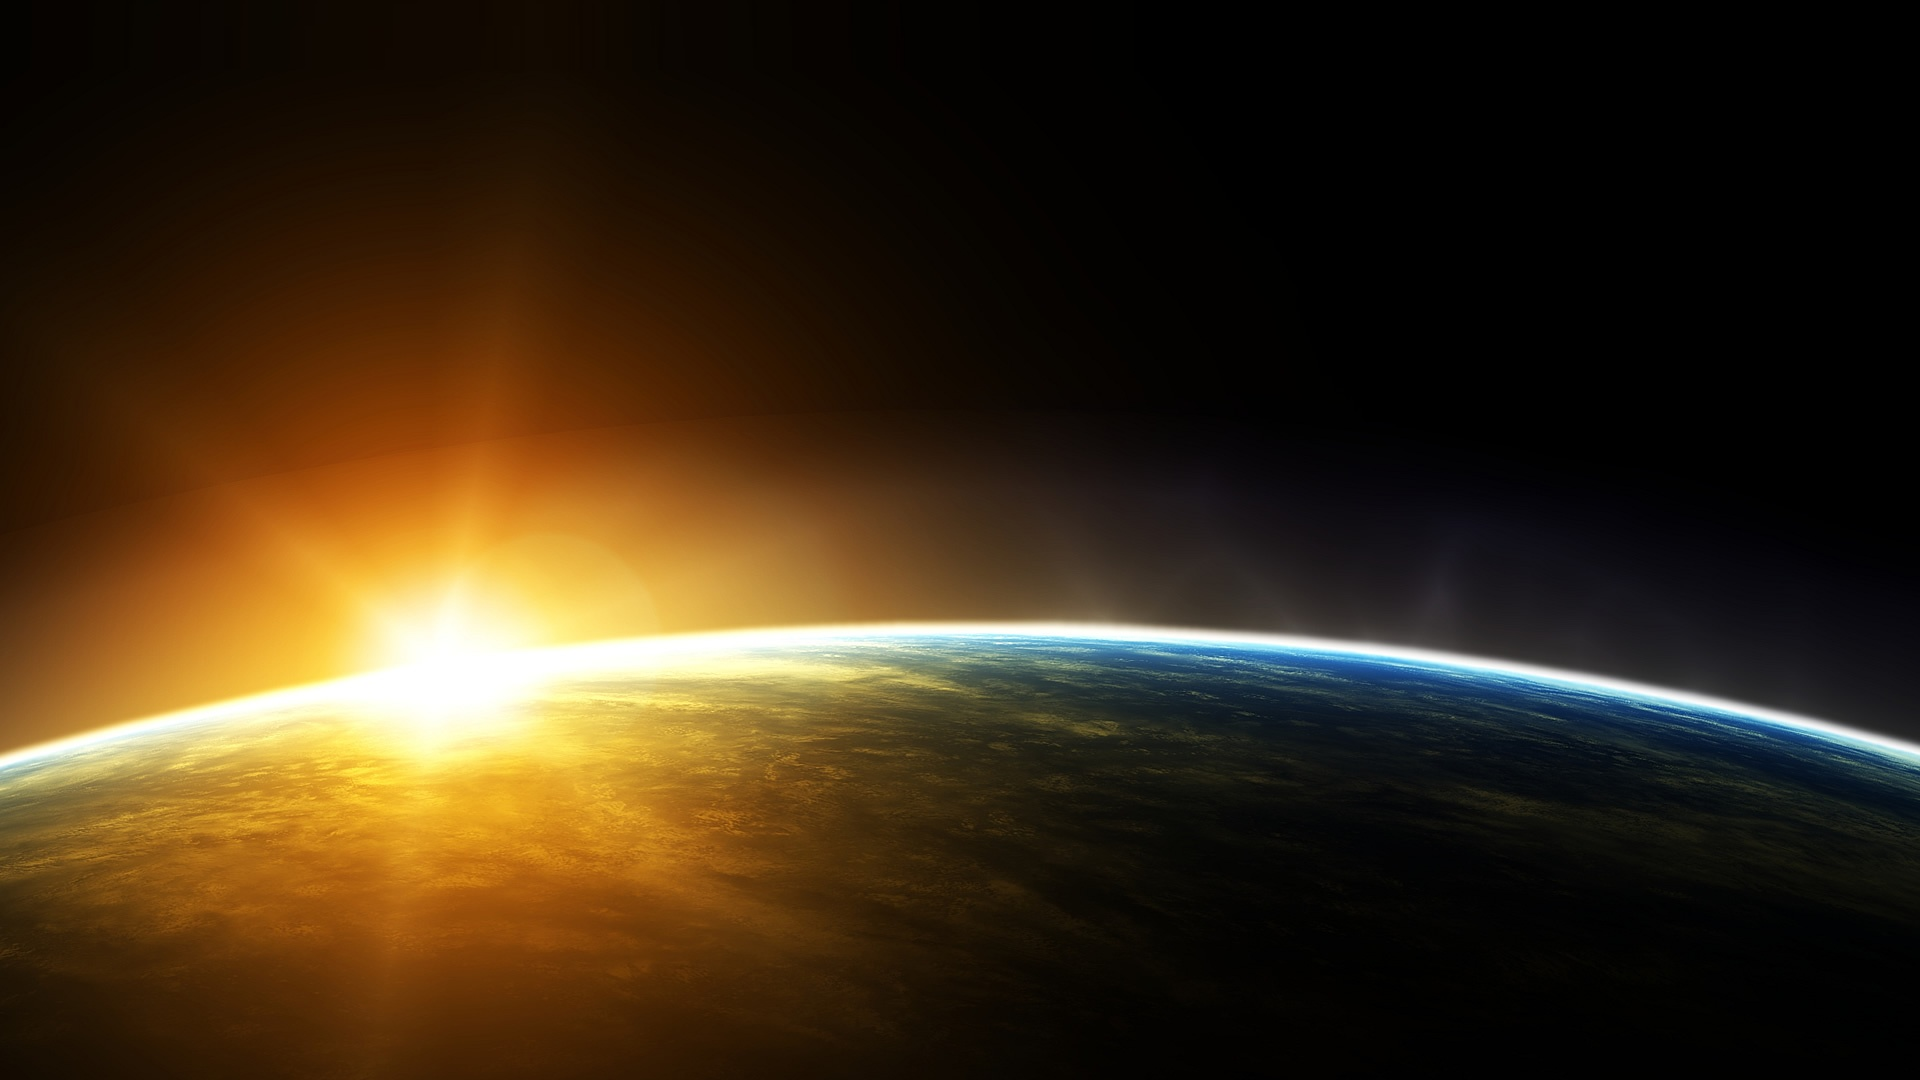 Sunrise From Space HD Wallpaper FullHDWpp   Full HD Wallpapers 1920x1080